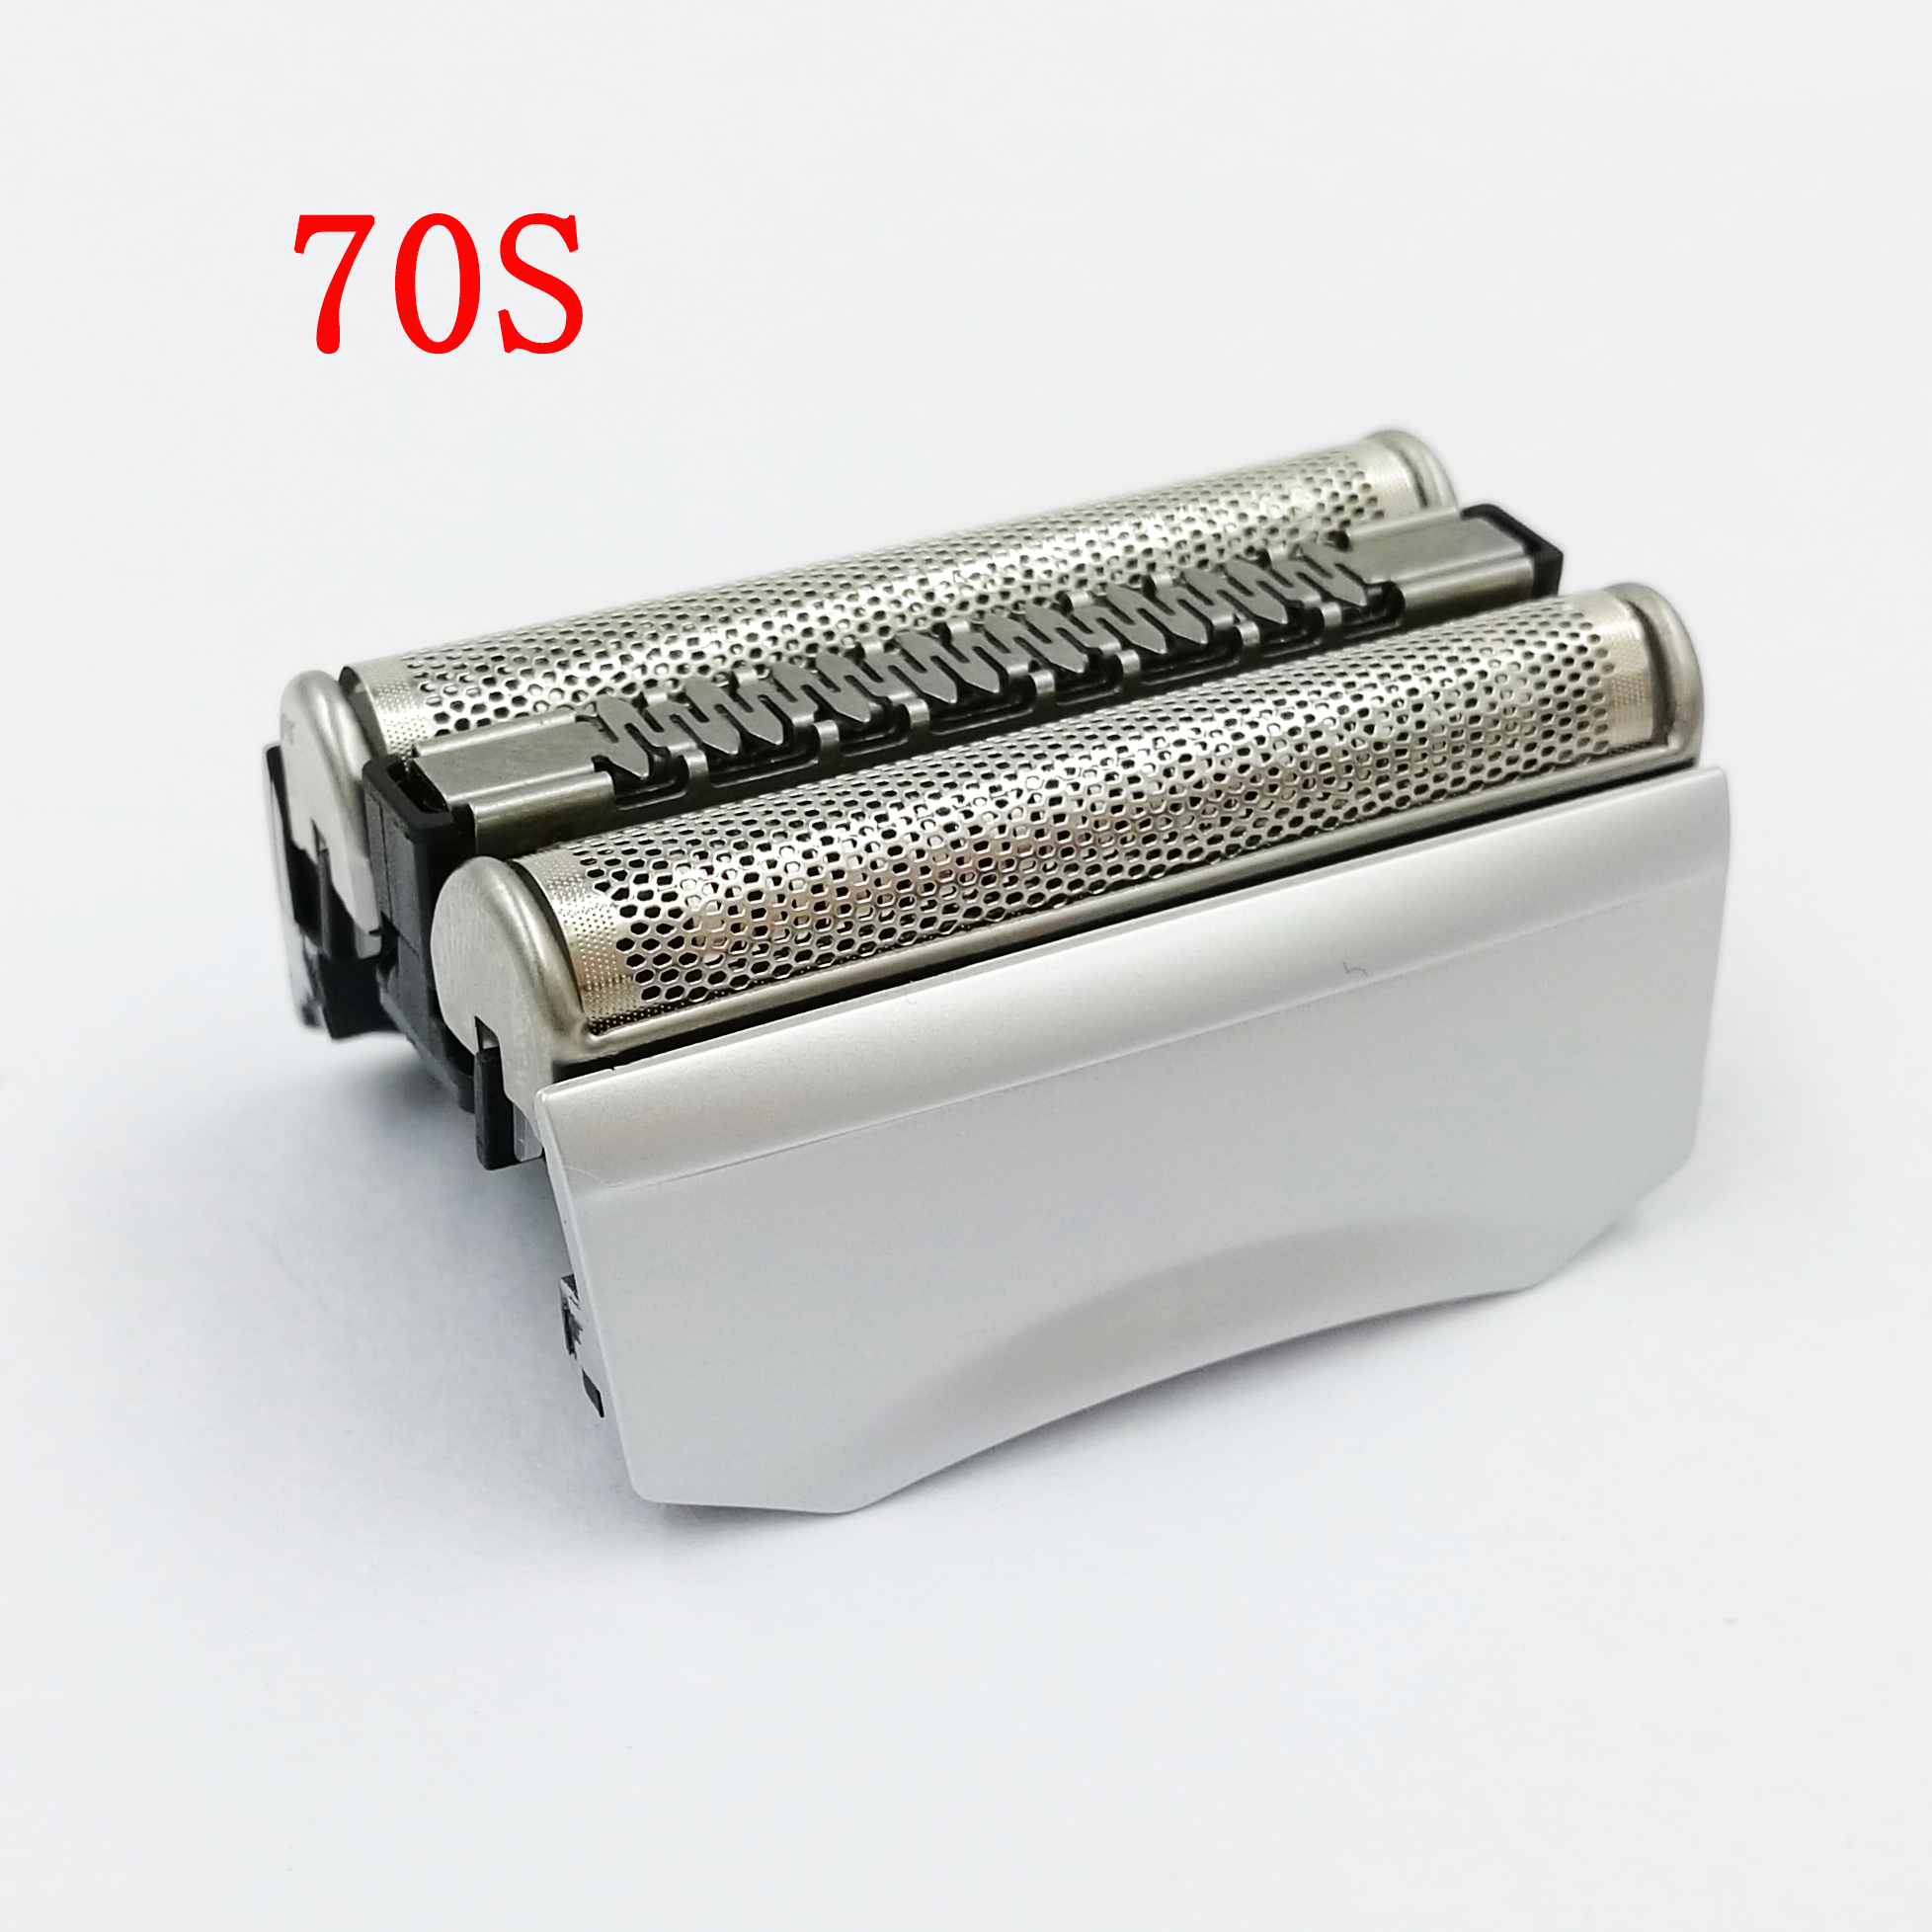 Electric Shaver Replacement 70S Foil & Cutter Shaver Head For Braun Series 7 720 730 7855 750 7840 7893  720s-3, 720s-4, 720s-5